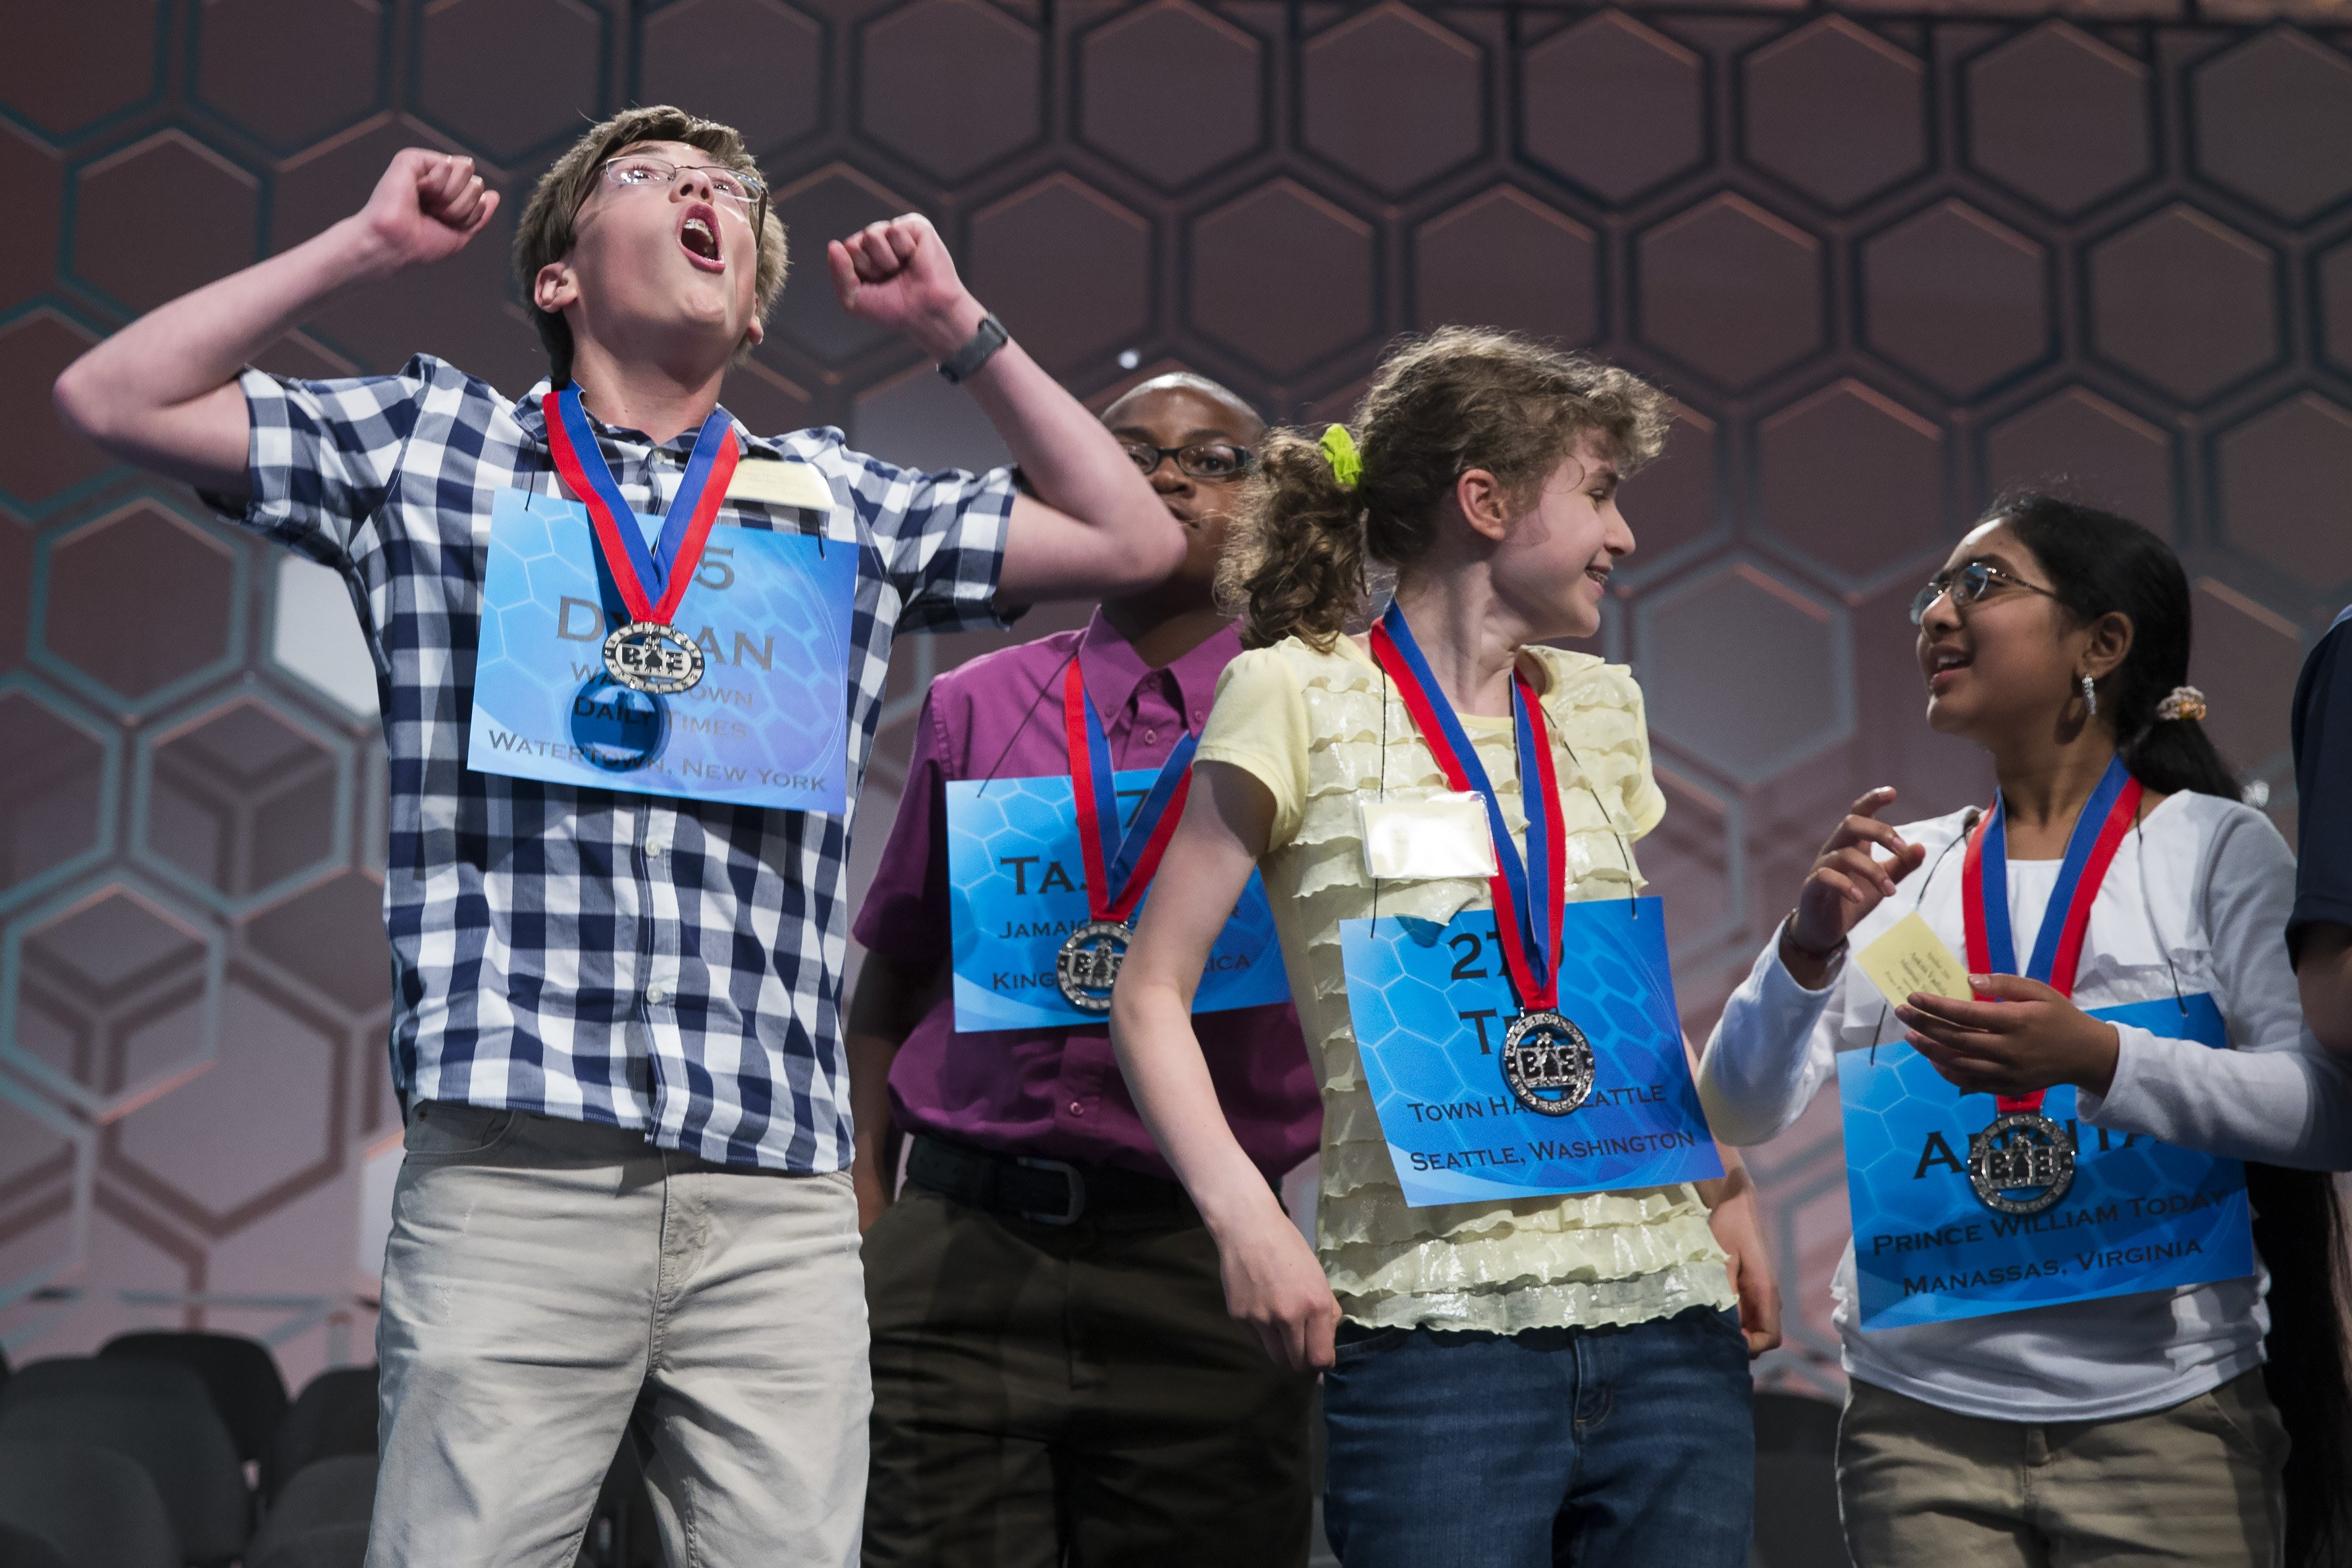 From left, Dylan O'Connor of Alexandria Bay, N.Y., Tajaun Gibbison of Mandeville, Jamaica, Téa Freedman-Susskind of Redmond, Wash., and Ankita Vadiala of Manassas, Va., celebrate after they qualified for the semifinal round of the National Spelling Bee on May 28, 2014 in Oxon Hill, Md.